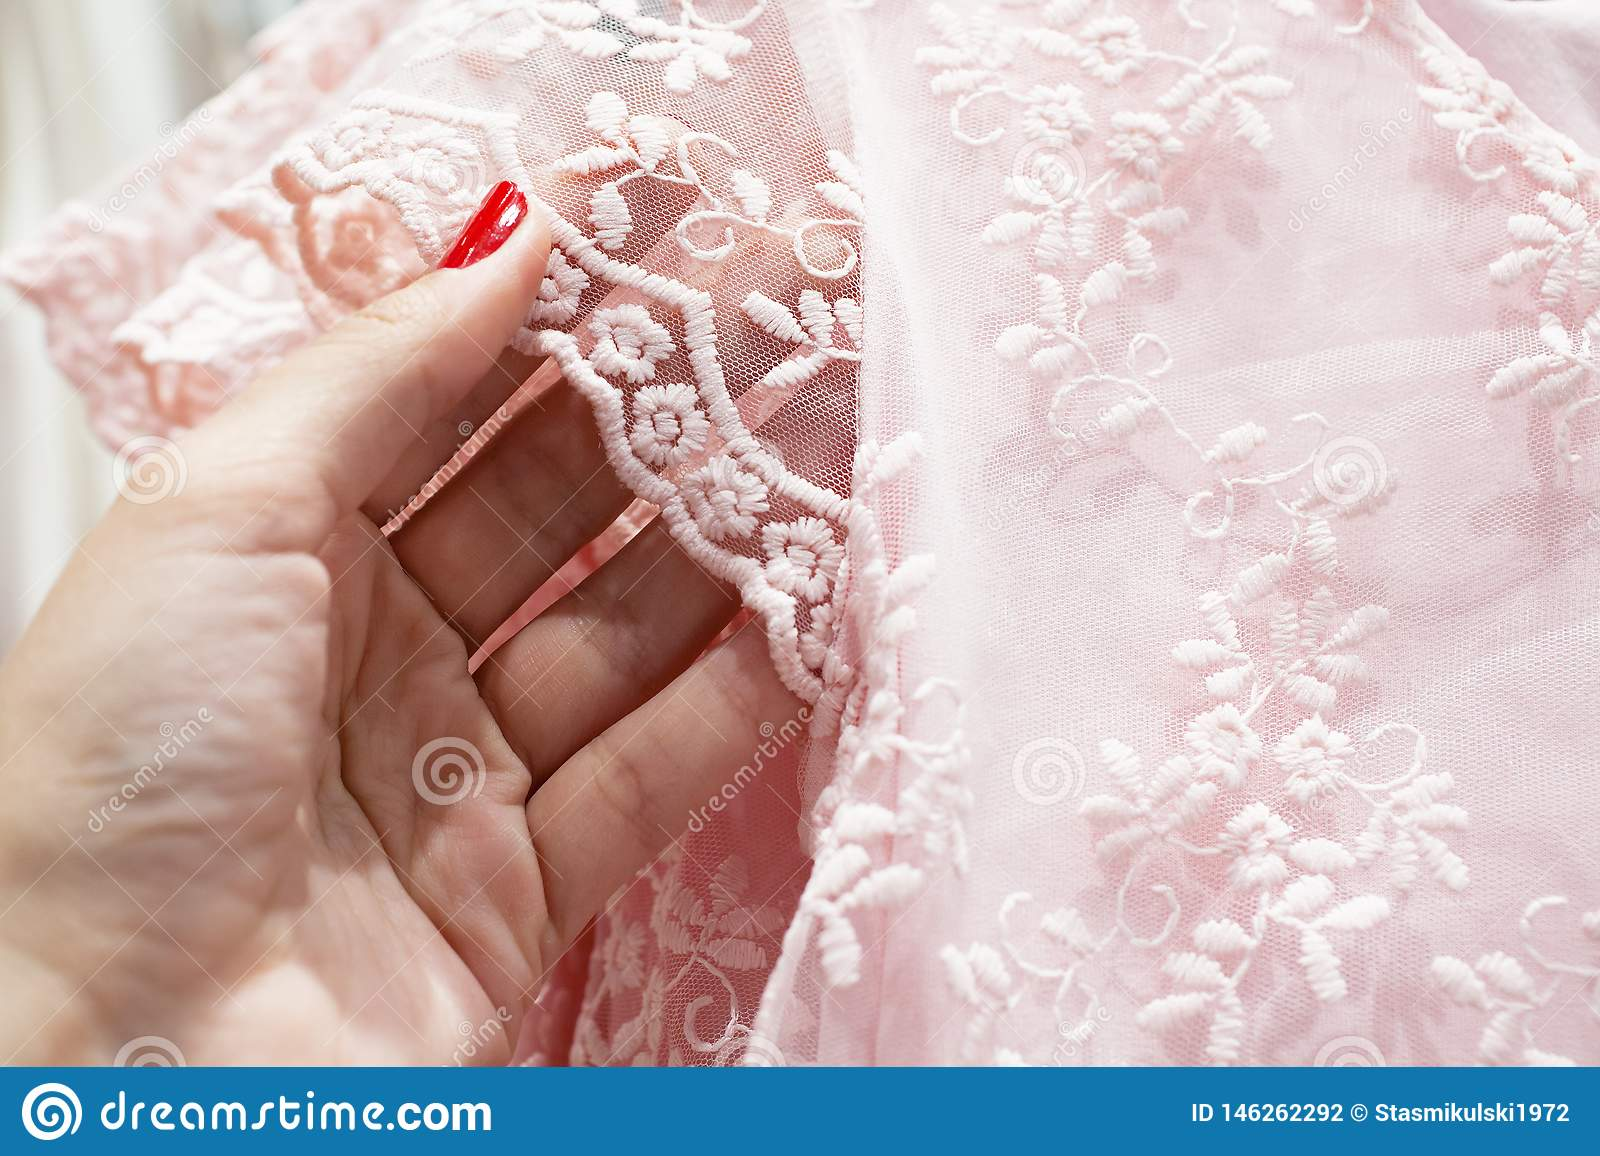 The girl touches the delicate pink lace